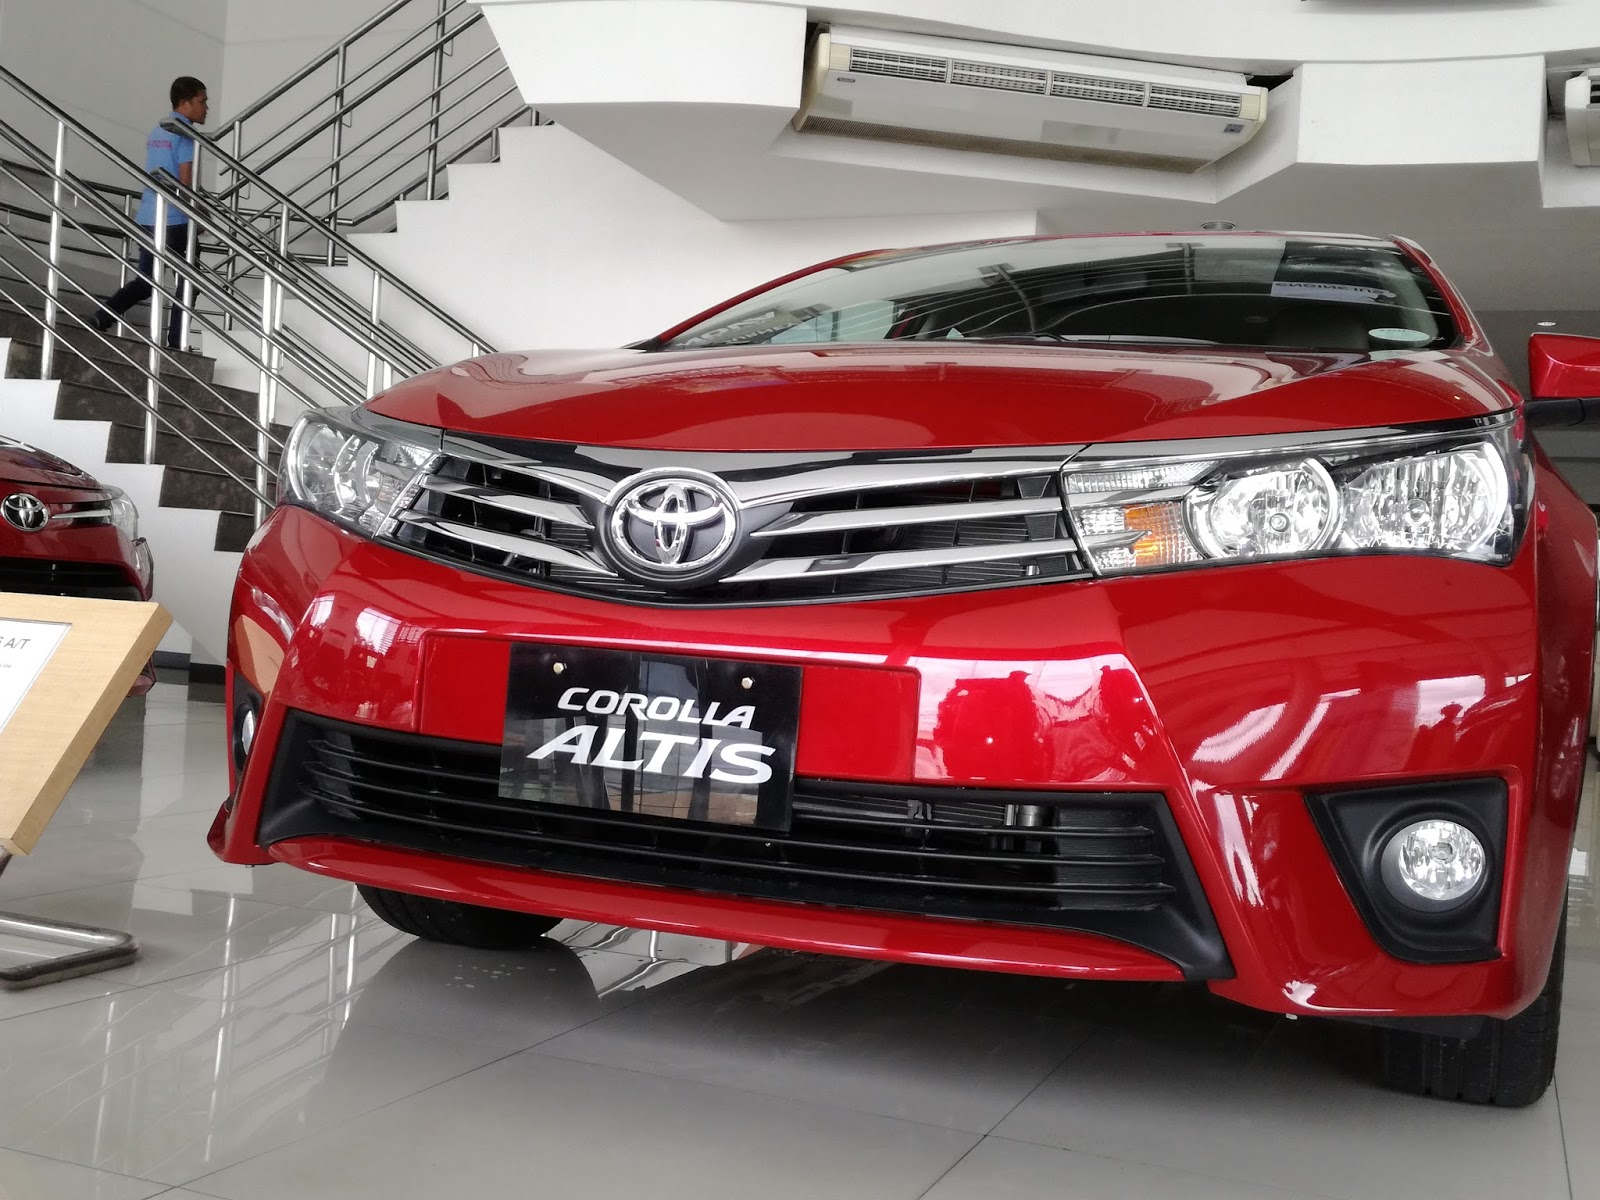 Let s see what the corolla altis can do and find out if the new waku doki dna that toyota has infused into the car can deliver the heart pounting